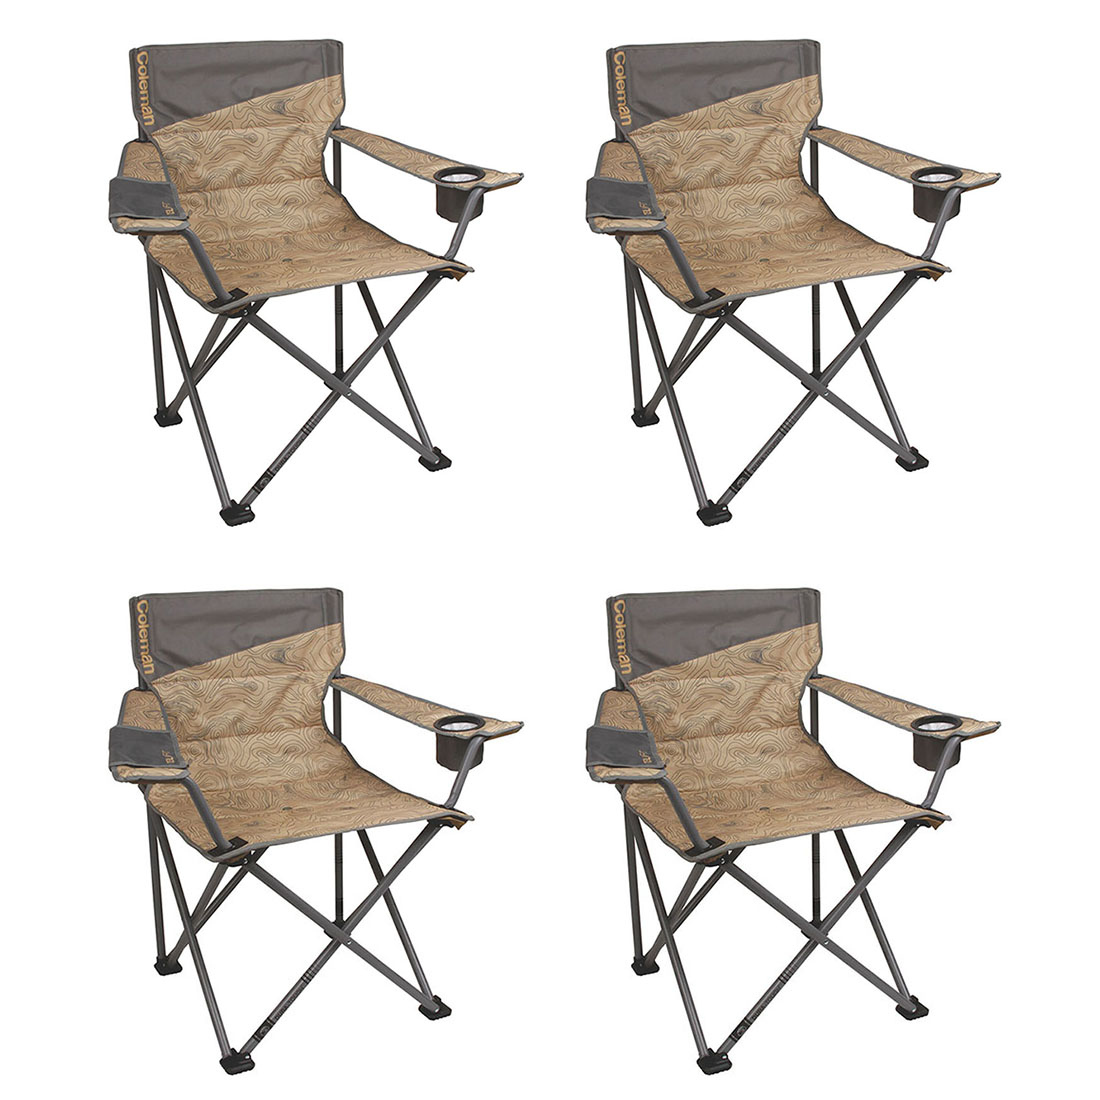 Coleman Oversized Big-n-Tall Quad Camping Chairs (4 Pack) | 4 x 2000023590